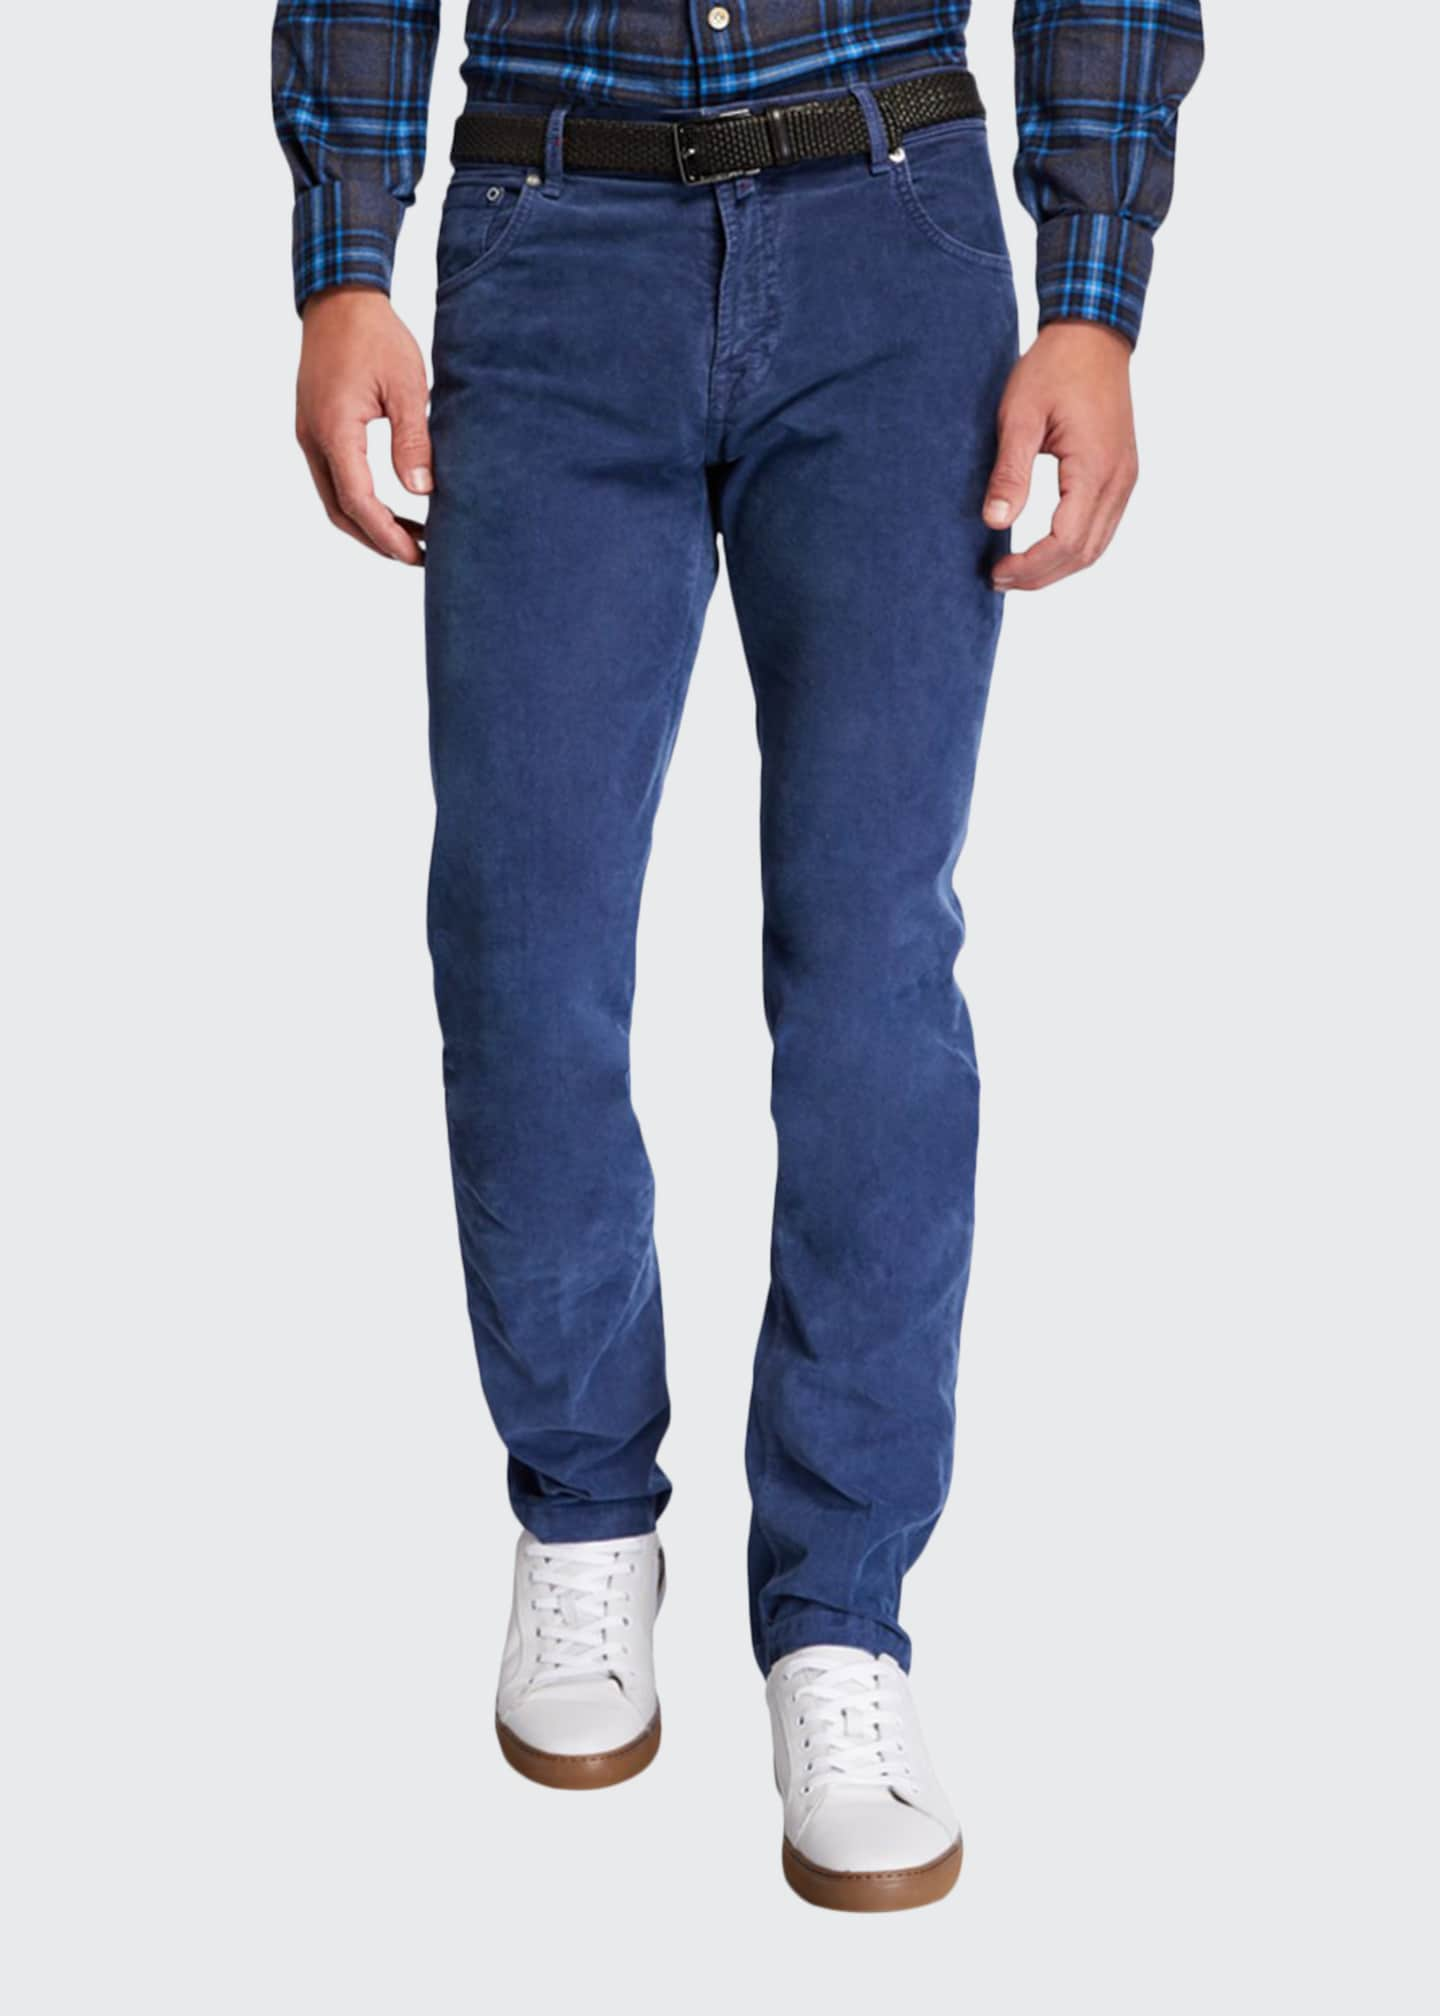 Men's Straight-Leg Corduroy 5-Pocket Pants